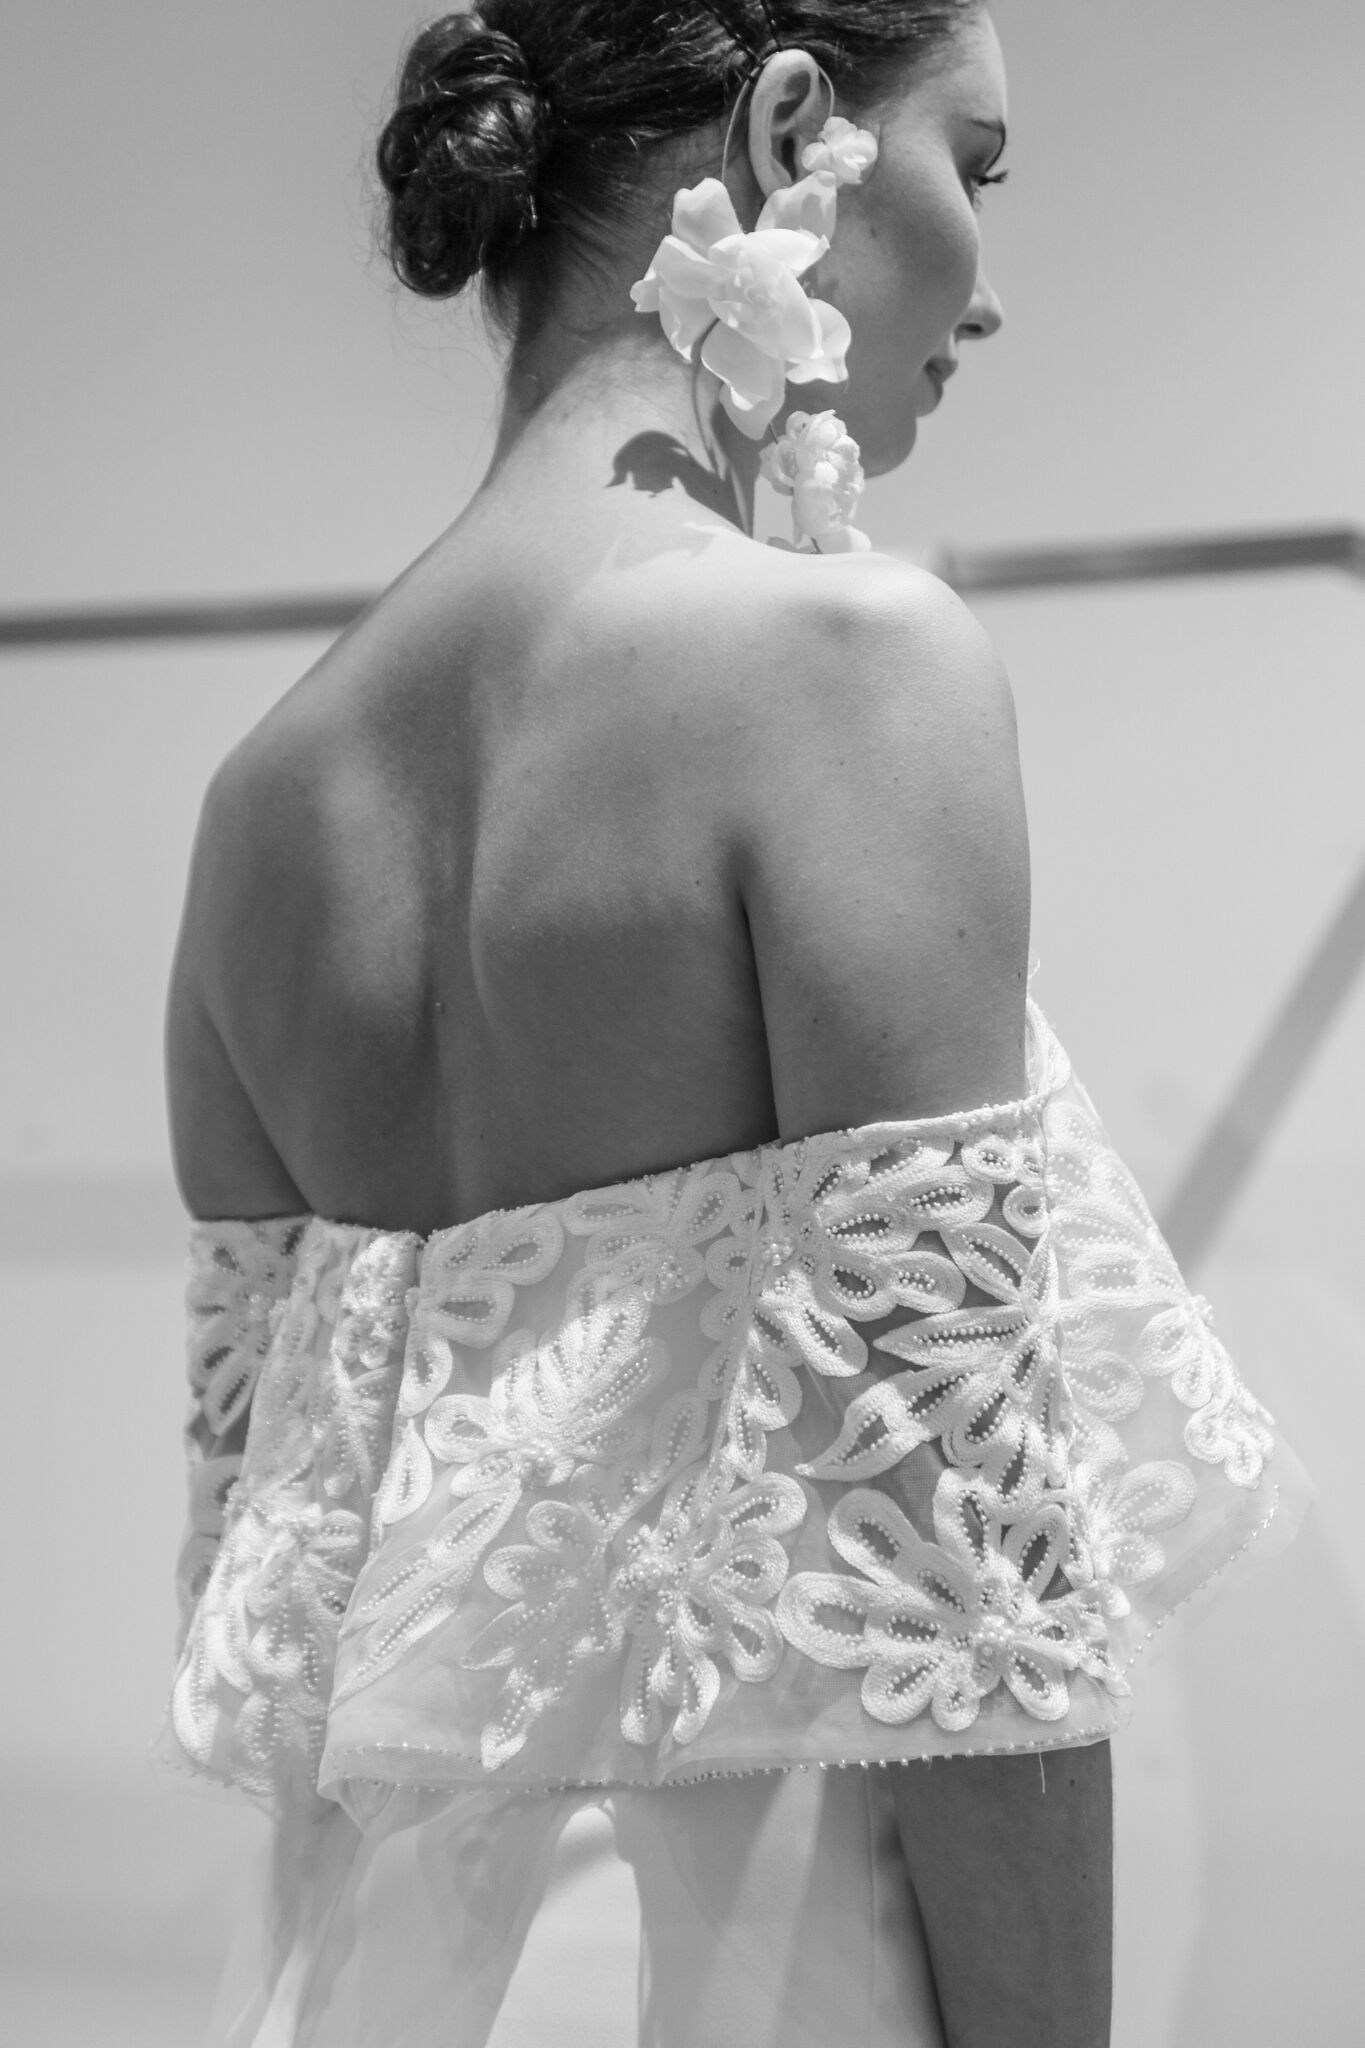 Lela Rose follows the off the shoulder ready-to-wear trend by creating a lace wedding dress for the chic bride. And can we talk about those earrings!?